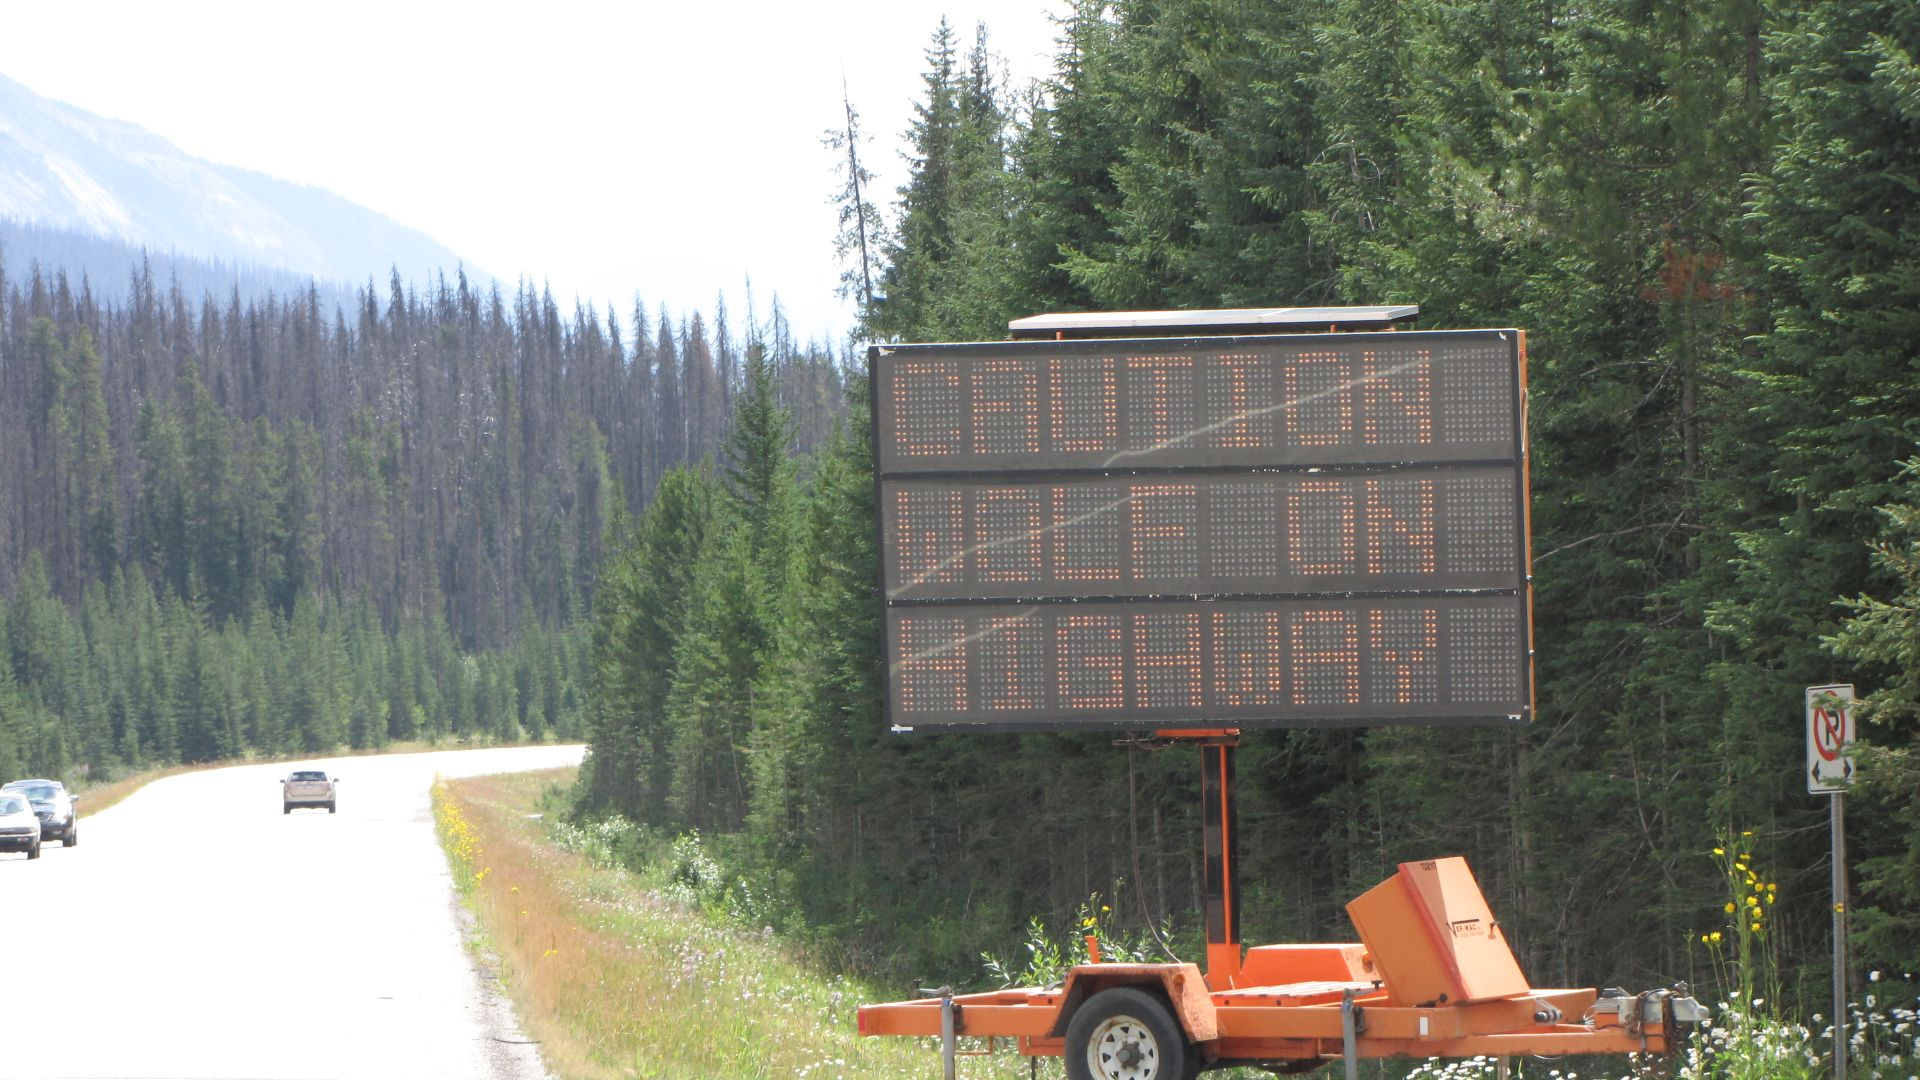 Kootenay Nat Pk, BC, Canada - Just in case you can\'t read it, it says